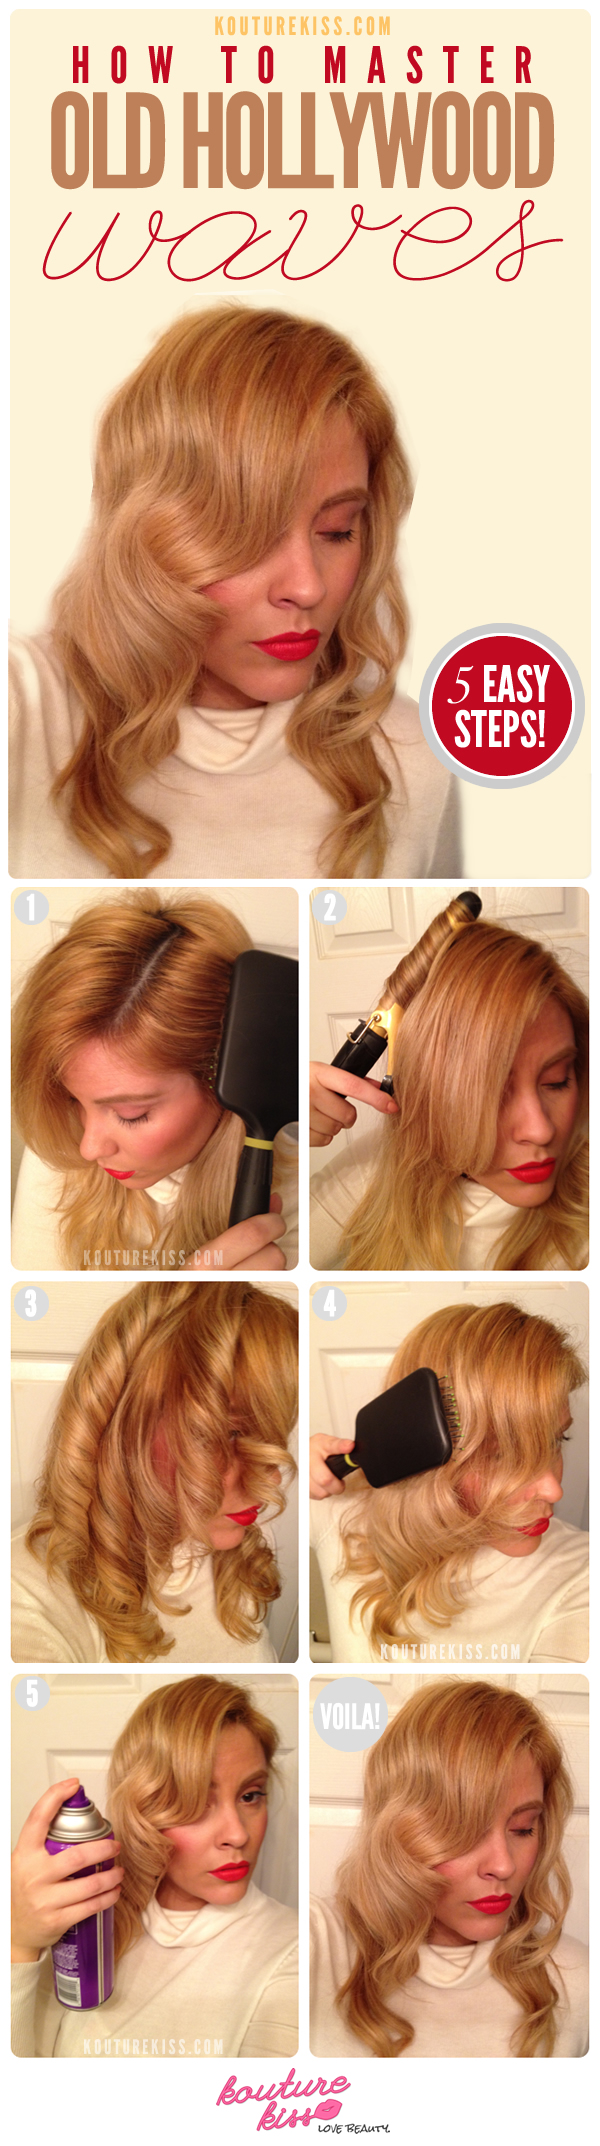 DIY Old Hollywood Waves Hairstyle via